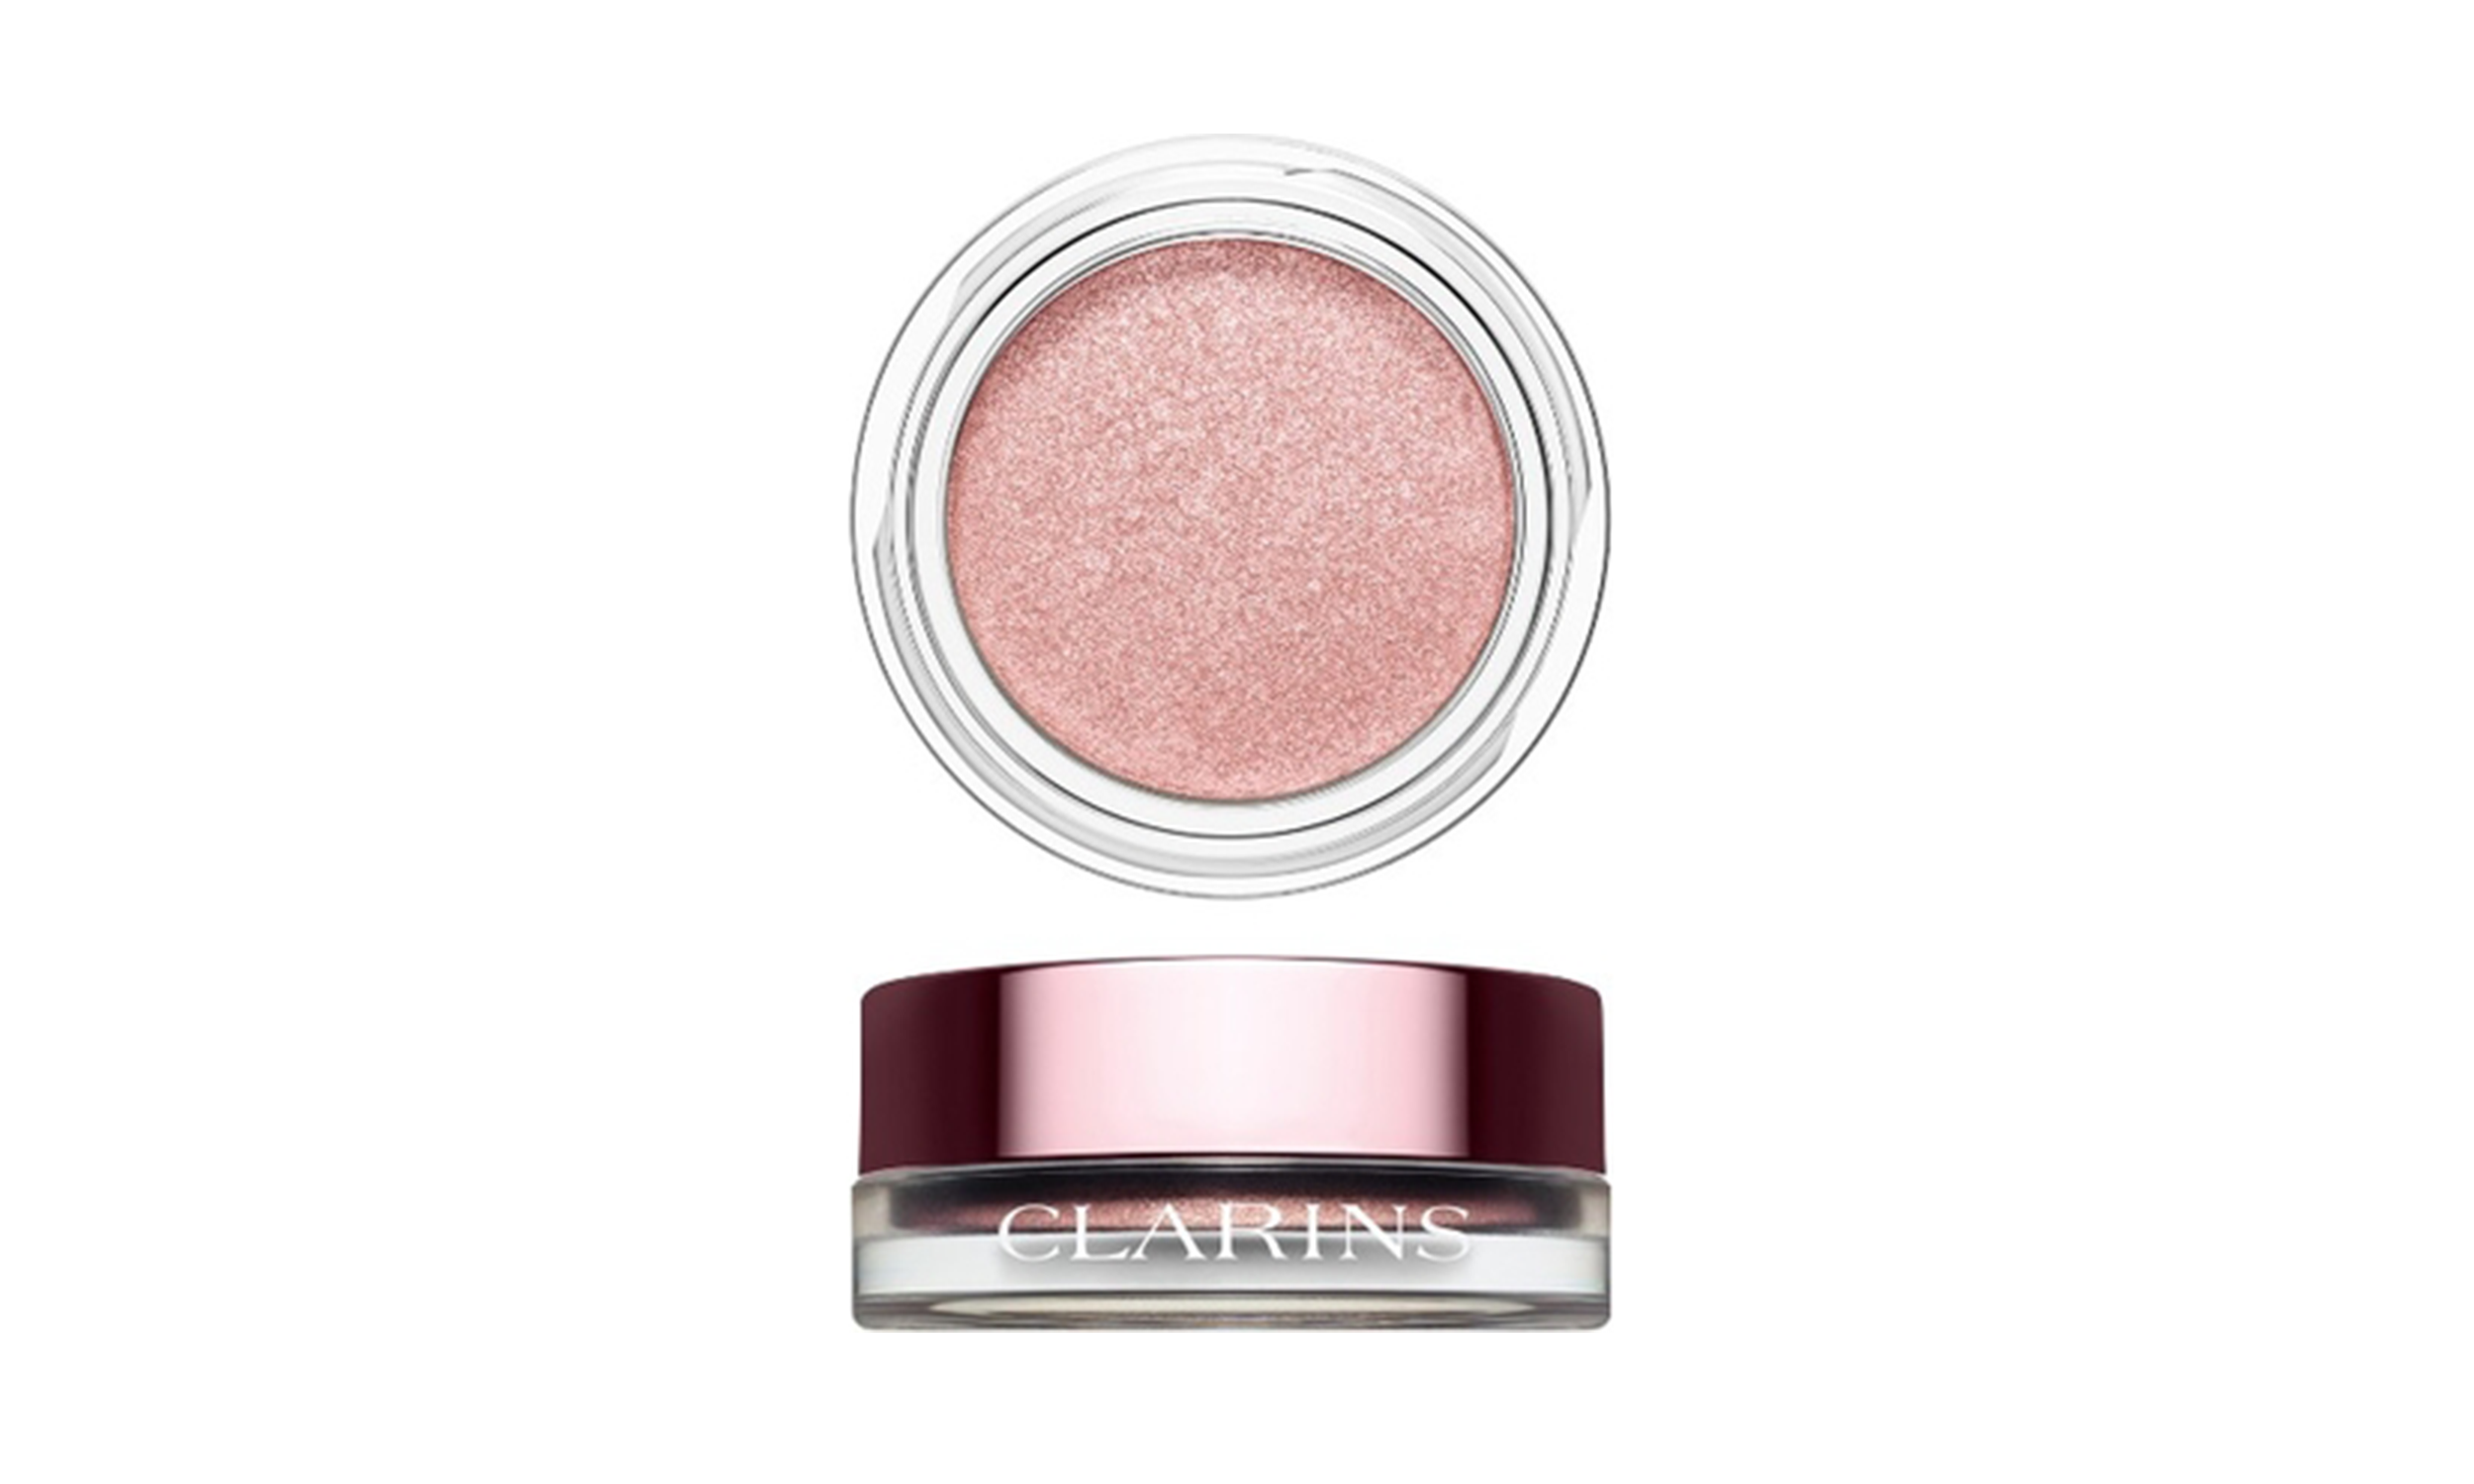 clarins-ombre-iridescent-eyeshadow-silver-rose.png